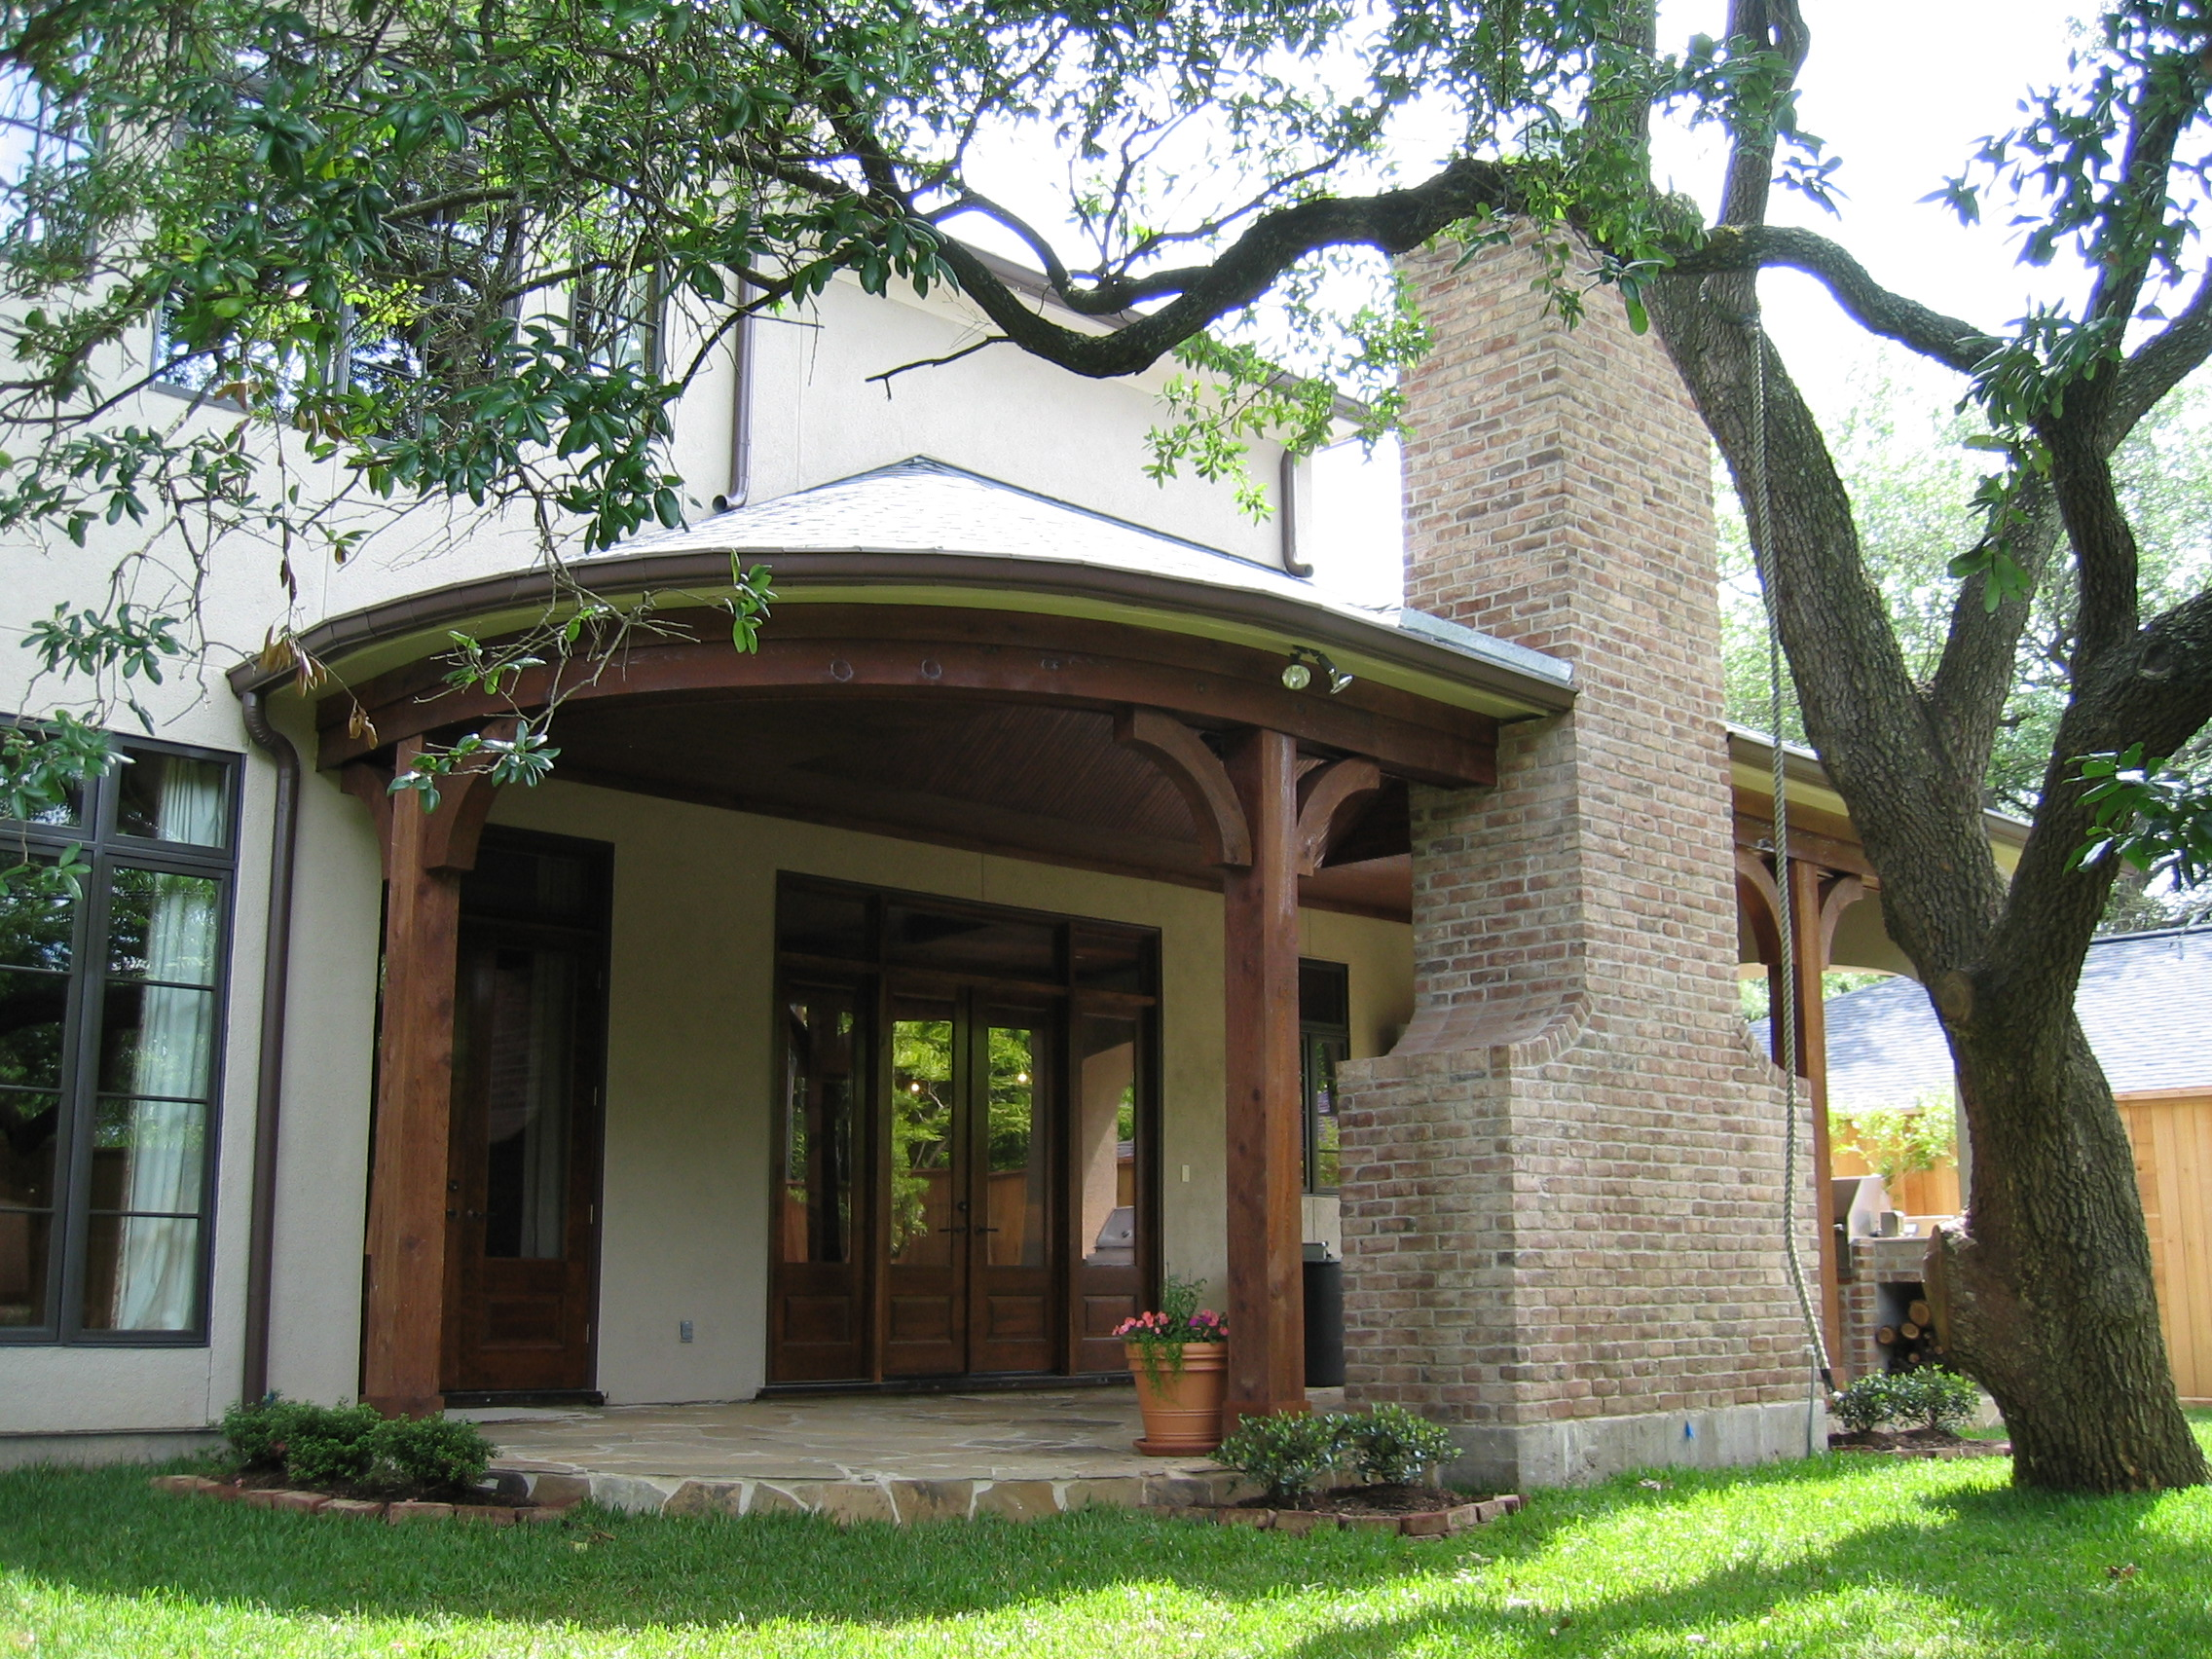 Award Winning Bellaire Showcase 2005, rear porch, cedar beams, outdoor kitchen by Watermark Builders in Houston Texas